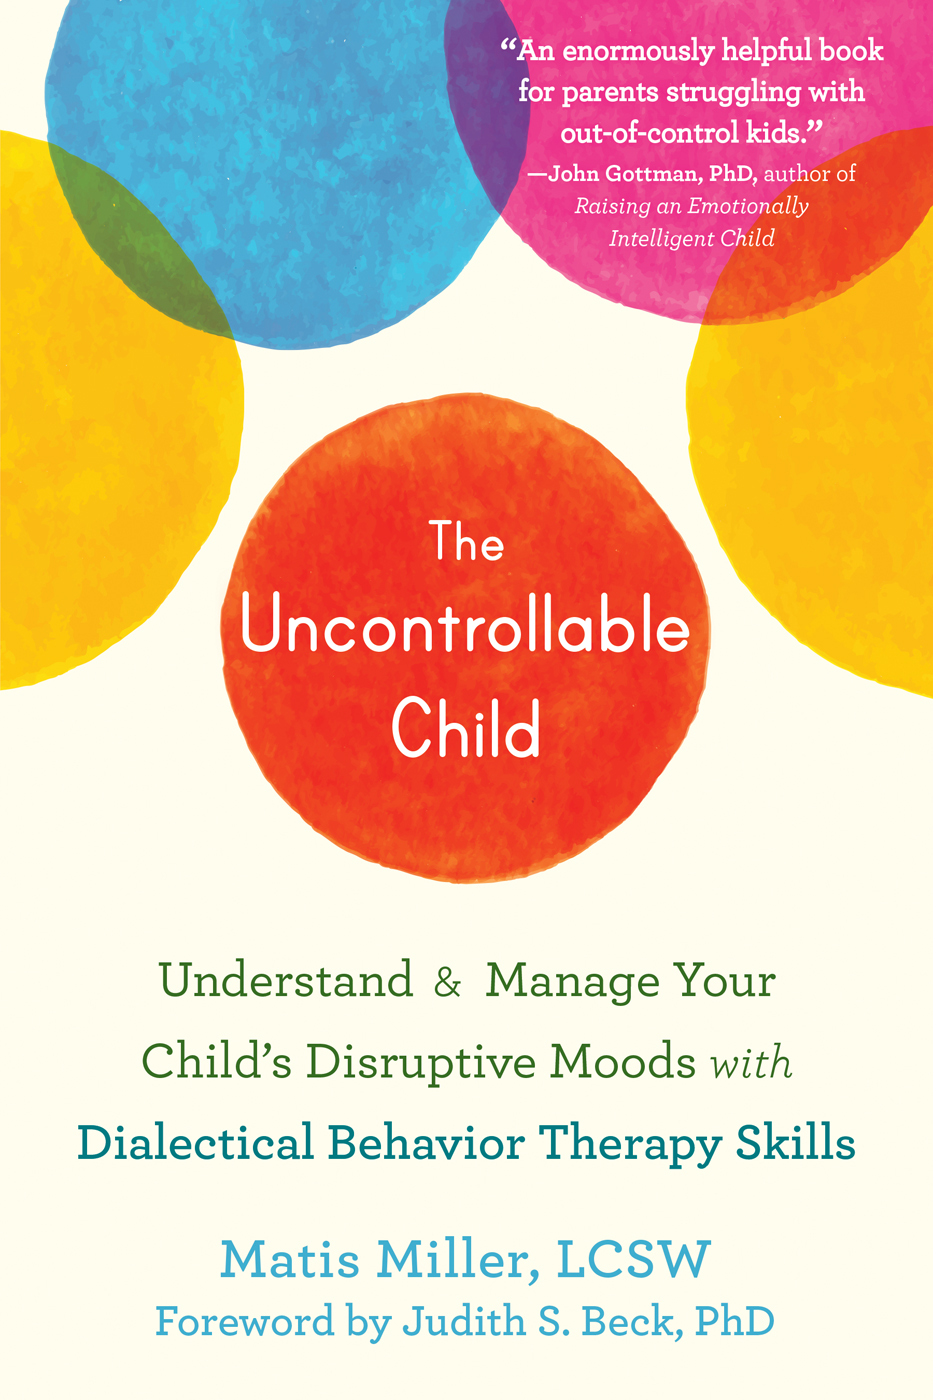 The Uncontrollable Child: Understand and Manage Your Child's Disruptive Moods with Dialectical Behavior Therapy Skills